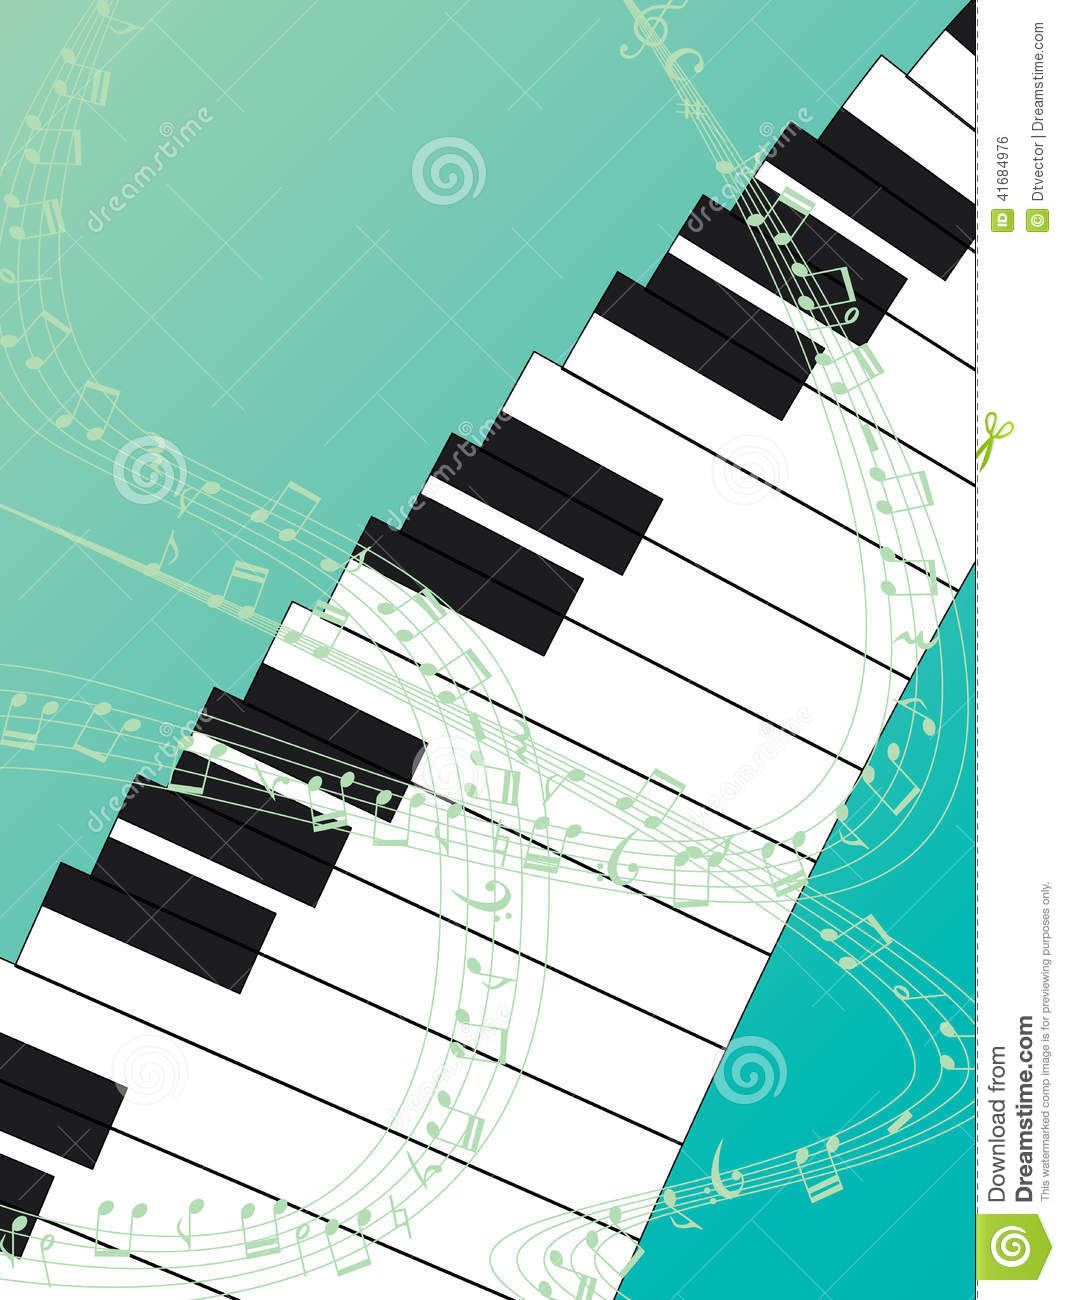 Piano Background Music: Piano Top Green Background Stock Vector. Illustration Of